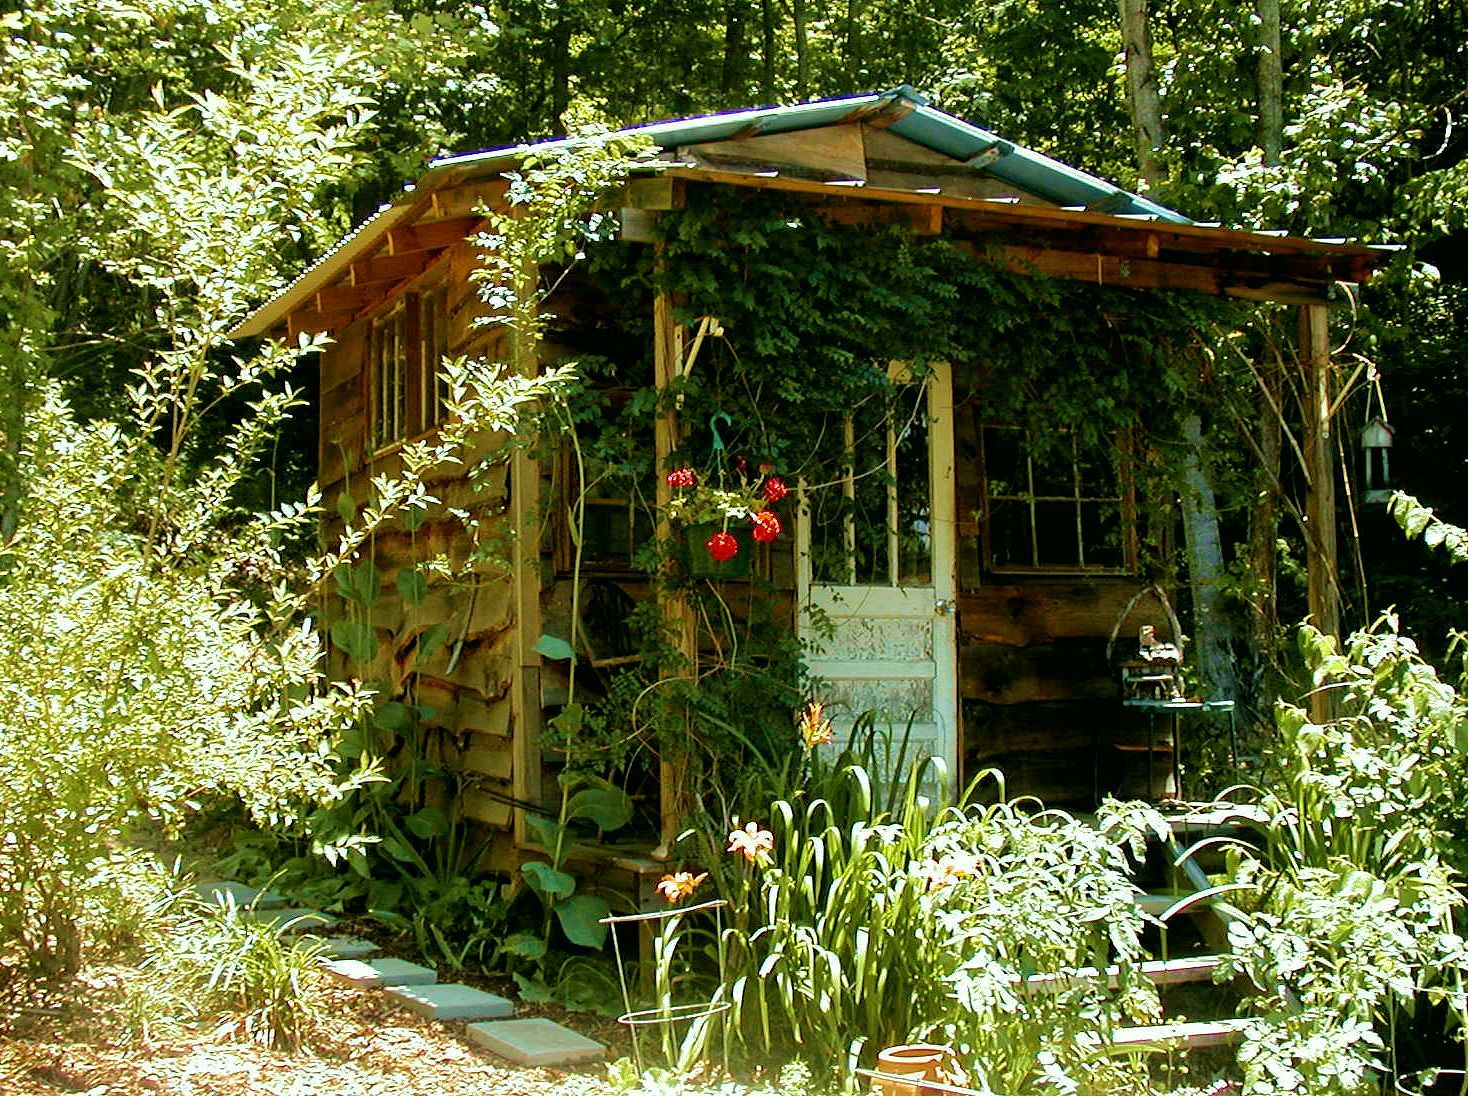 Garden house at the Hummingbird Lodge in North